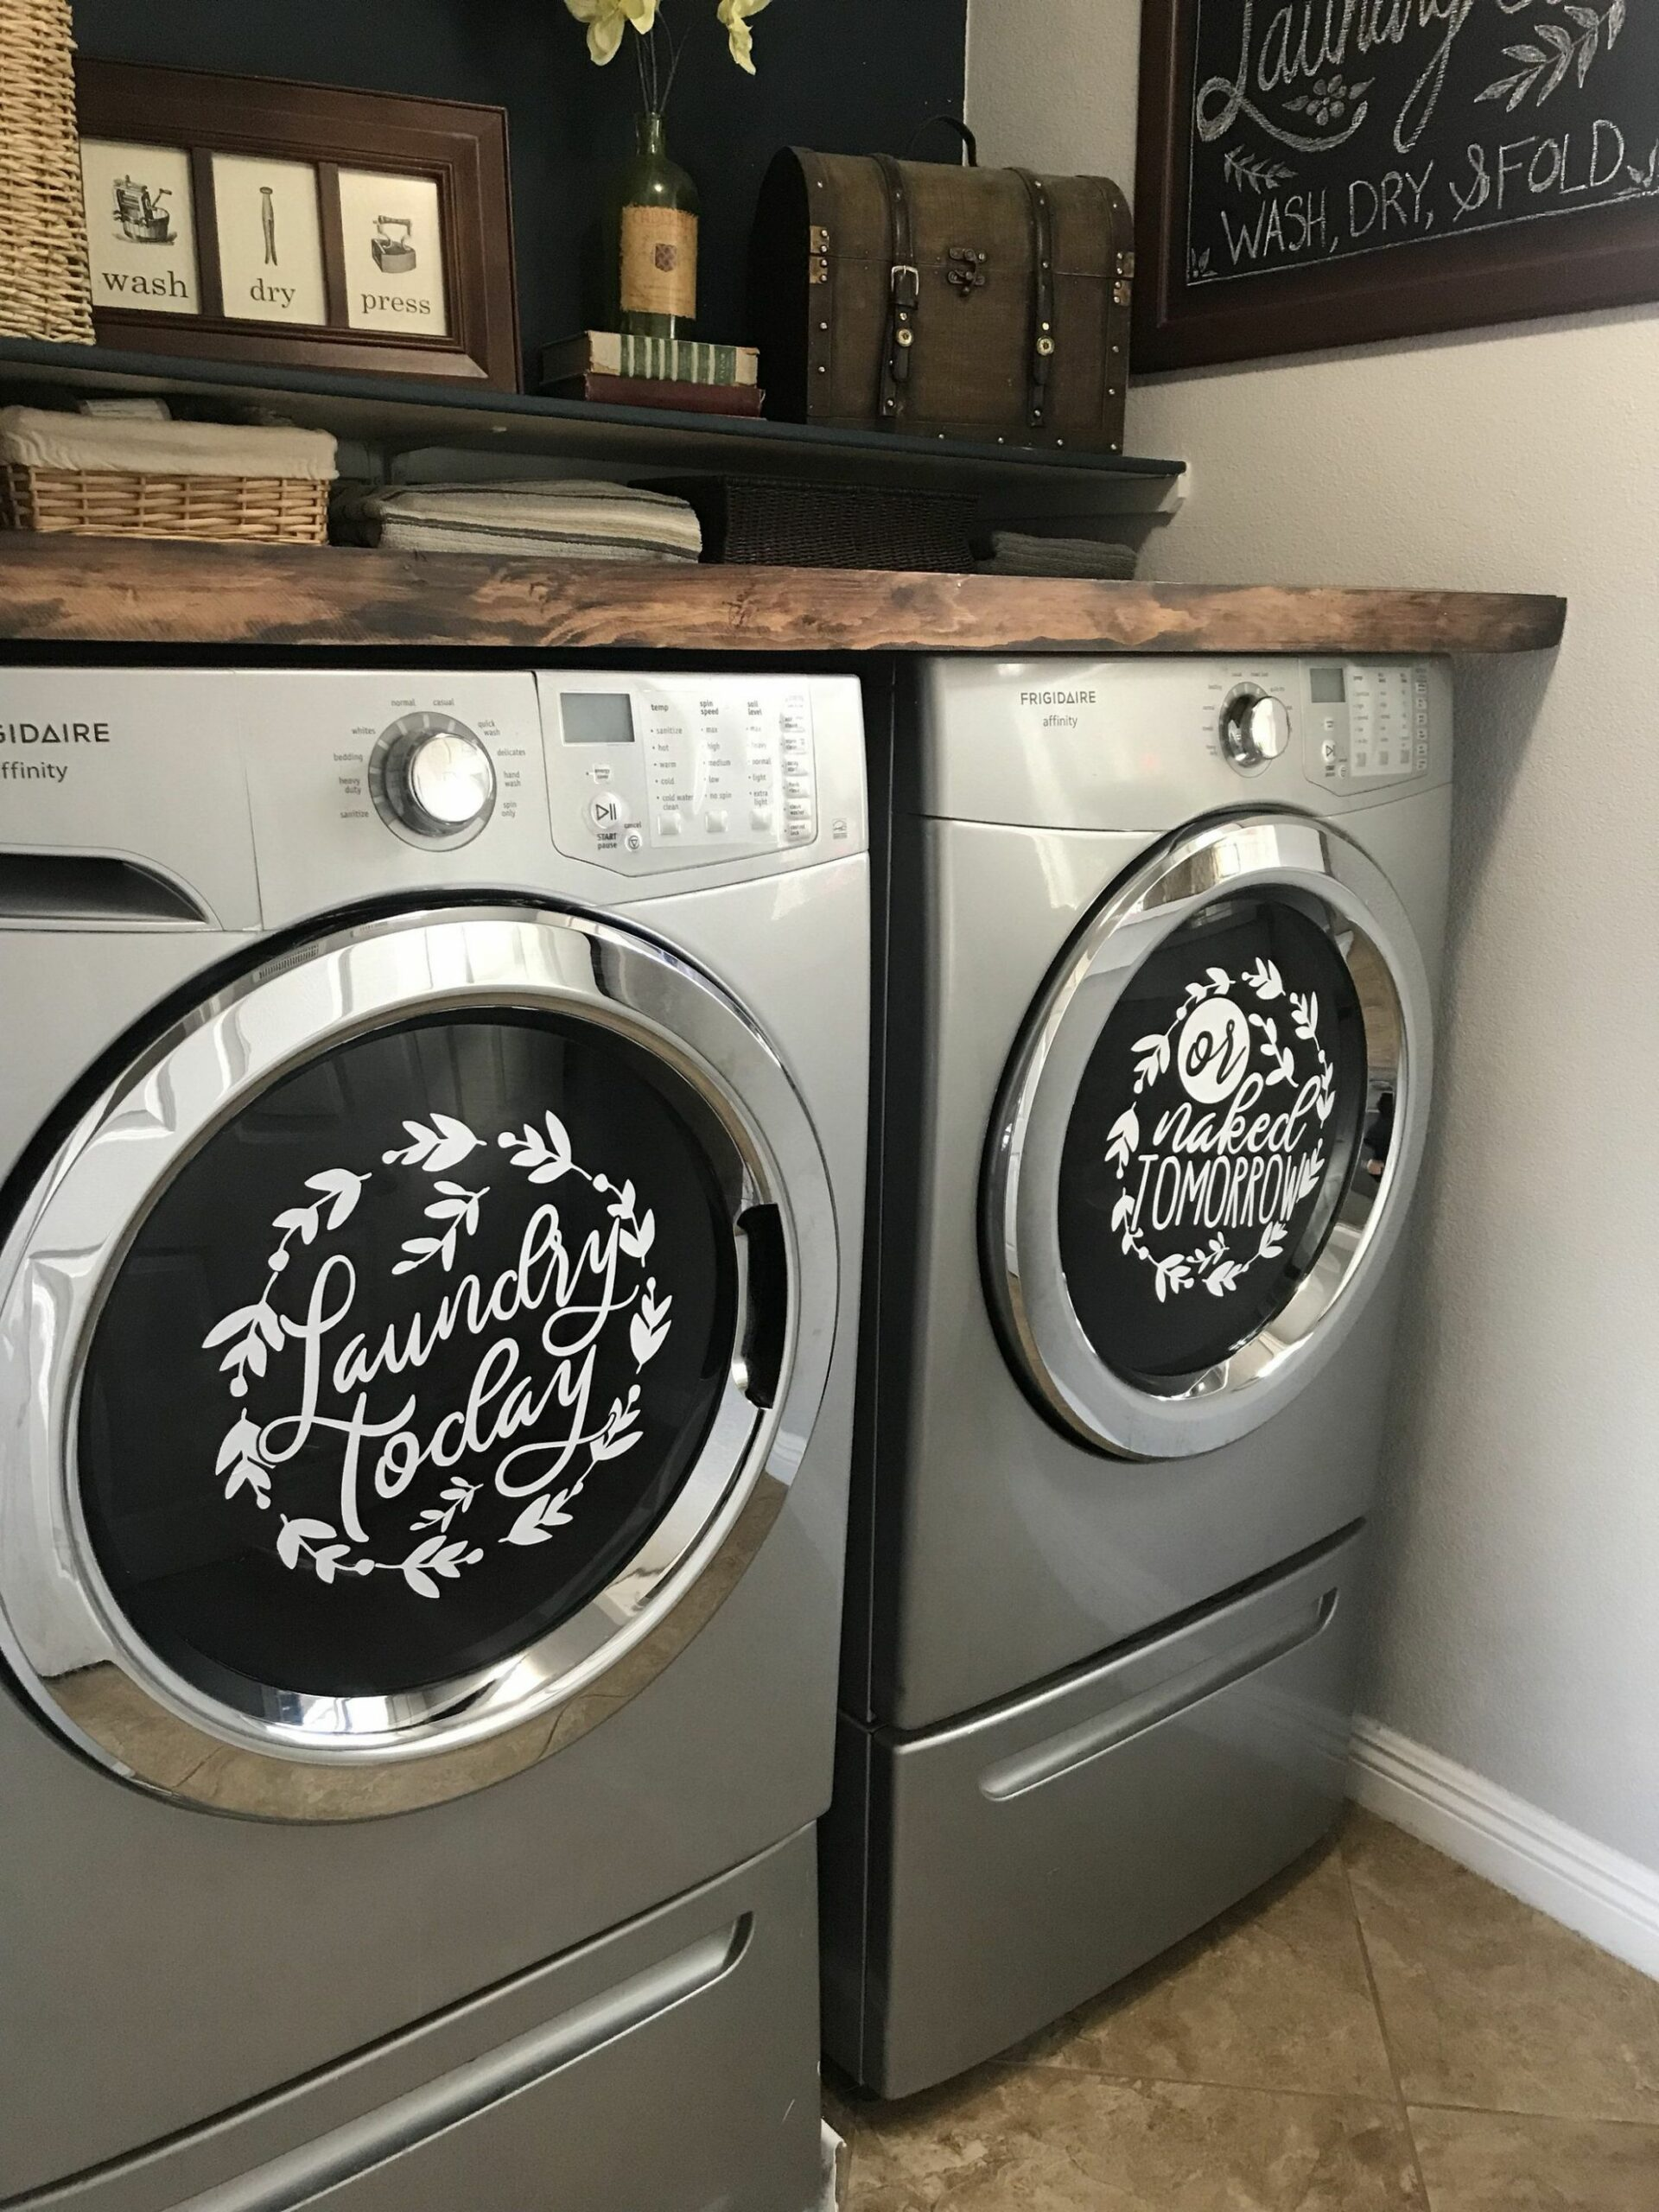 Pin on Home☪︎ - laundry room decor etsy